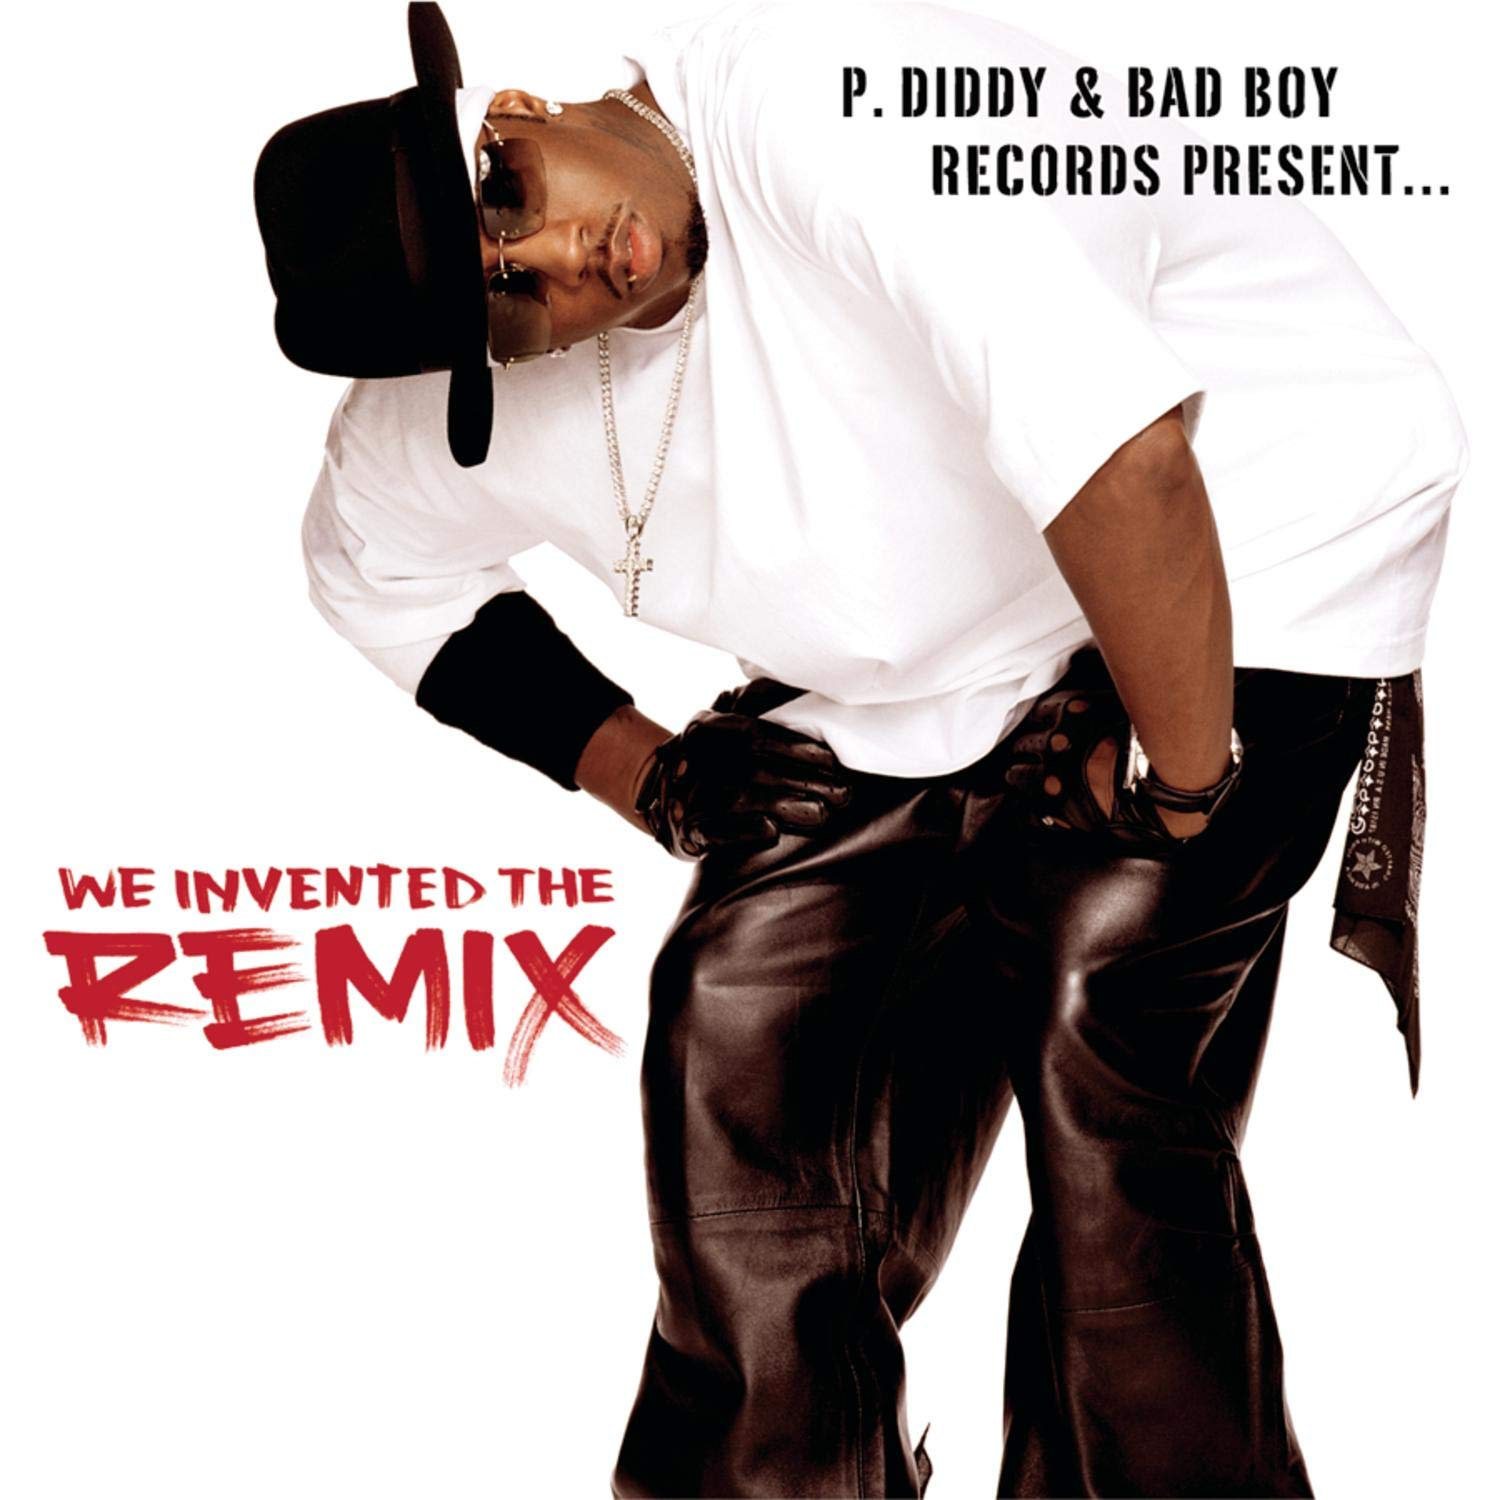 P. Diddy & Bad Boy Records, We Invented the Remix